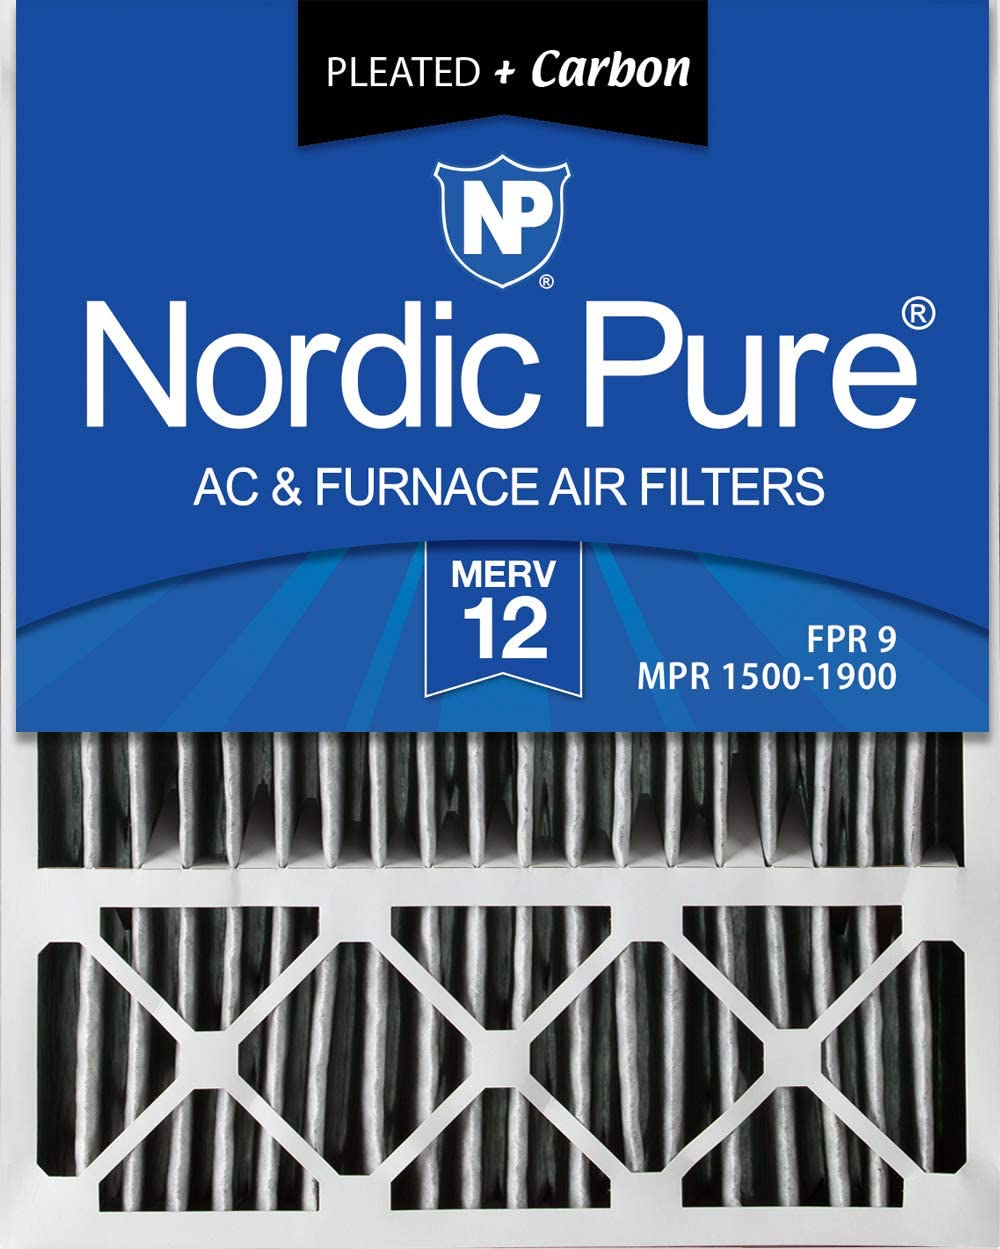 Nordic Pure 20x25x5 MERV 12 Pleated Plus Carbon Honeywell/Lennox Replacement AC Furnace Air Filters 2 Pack